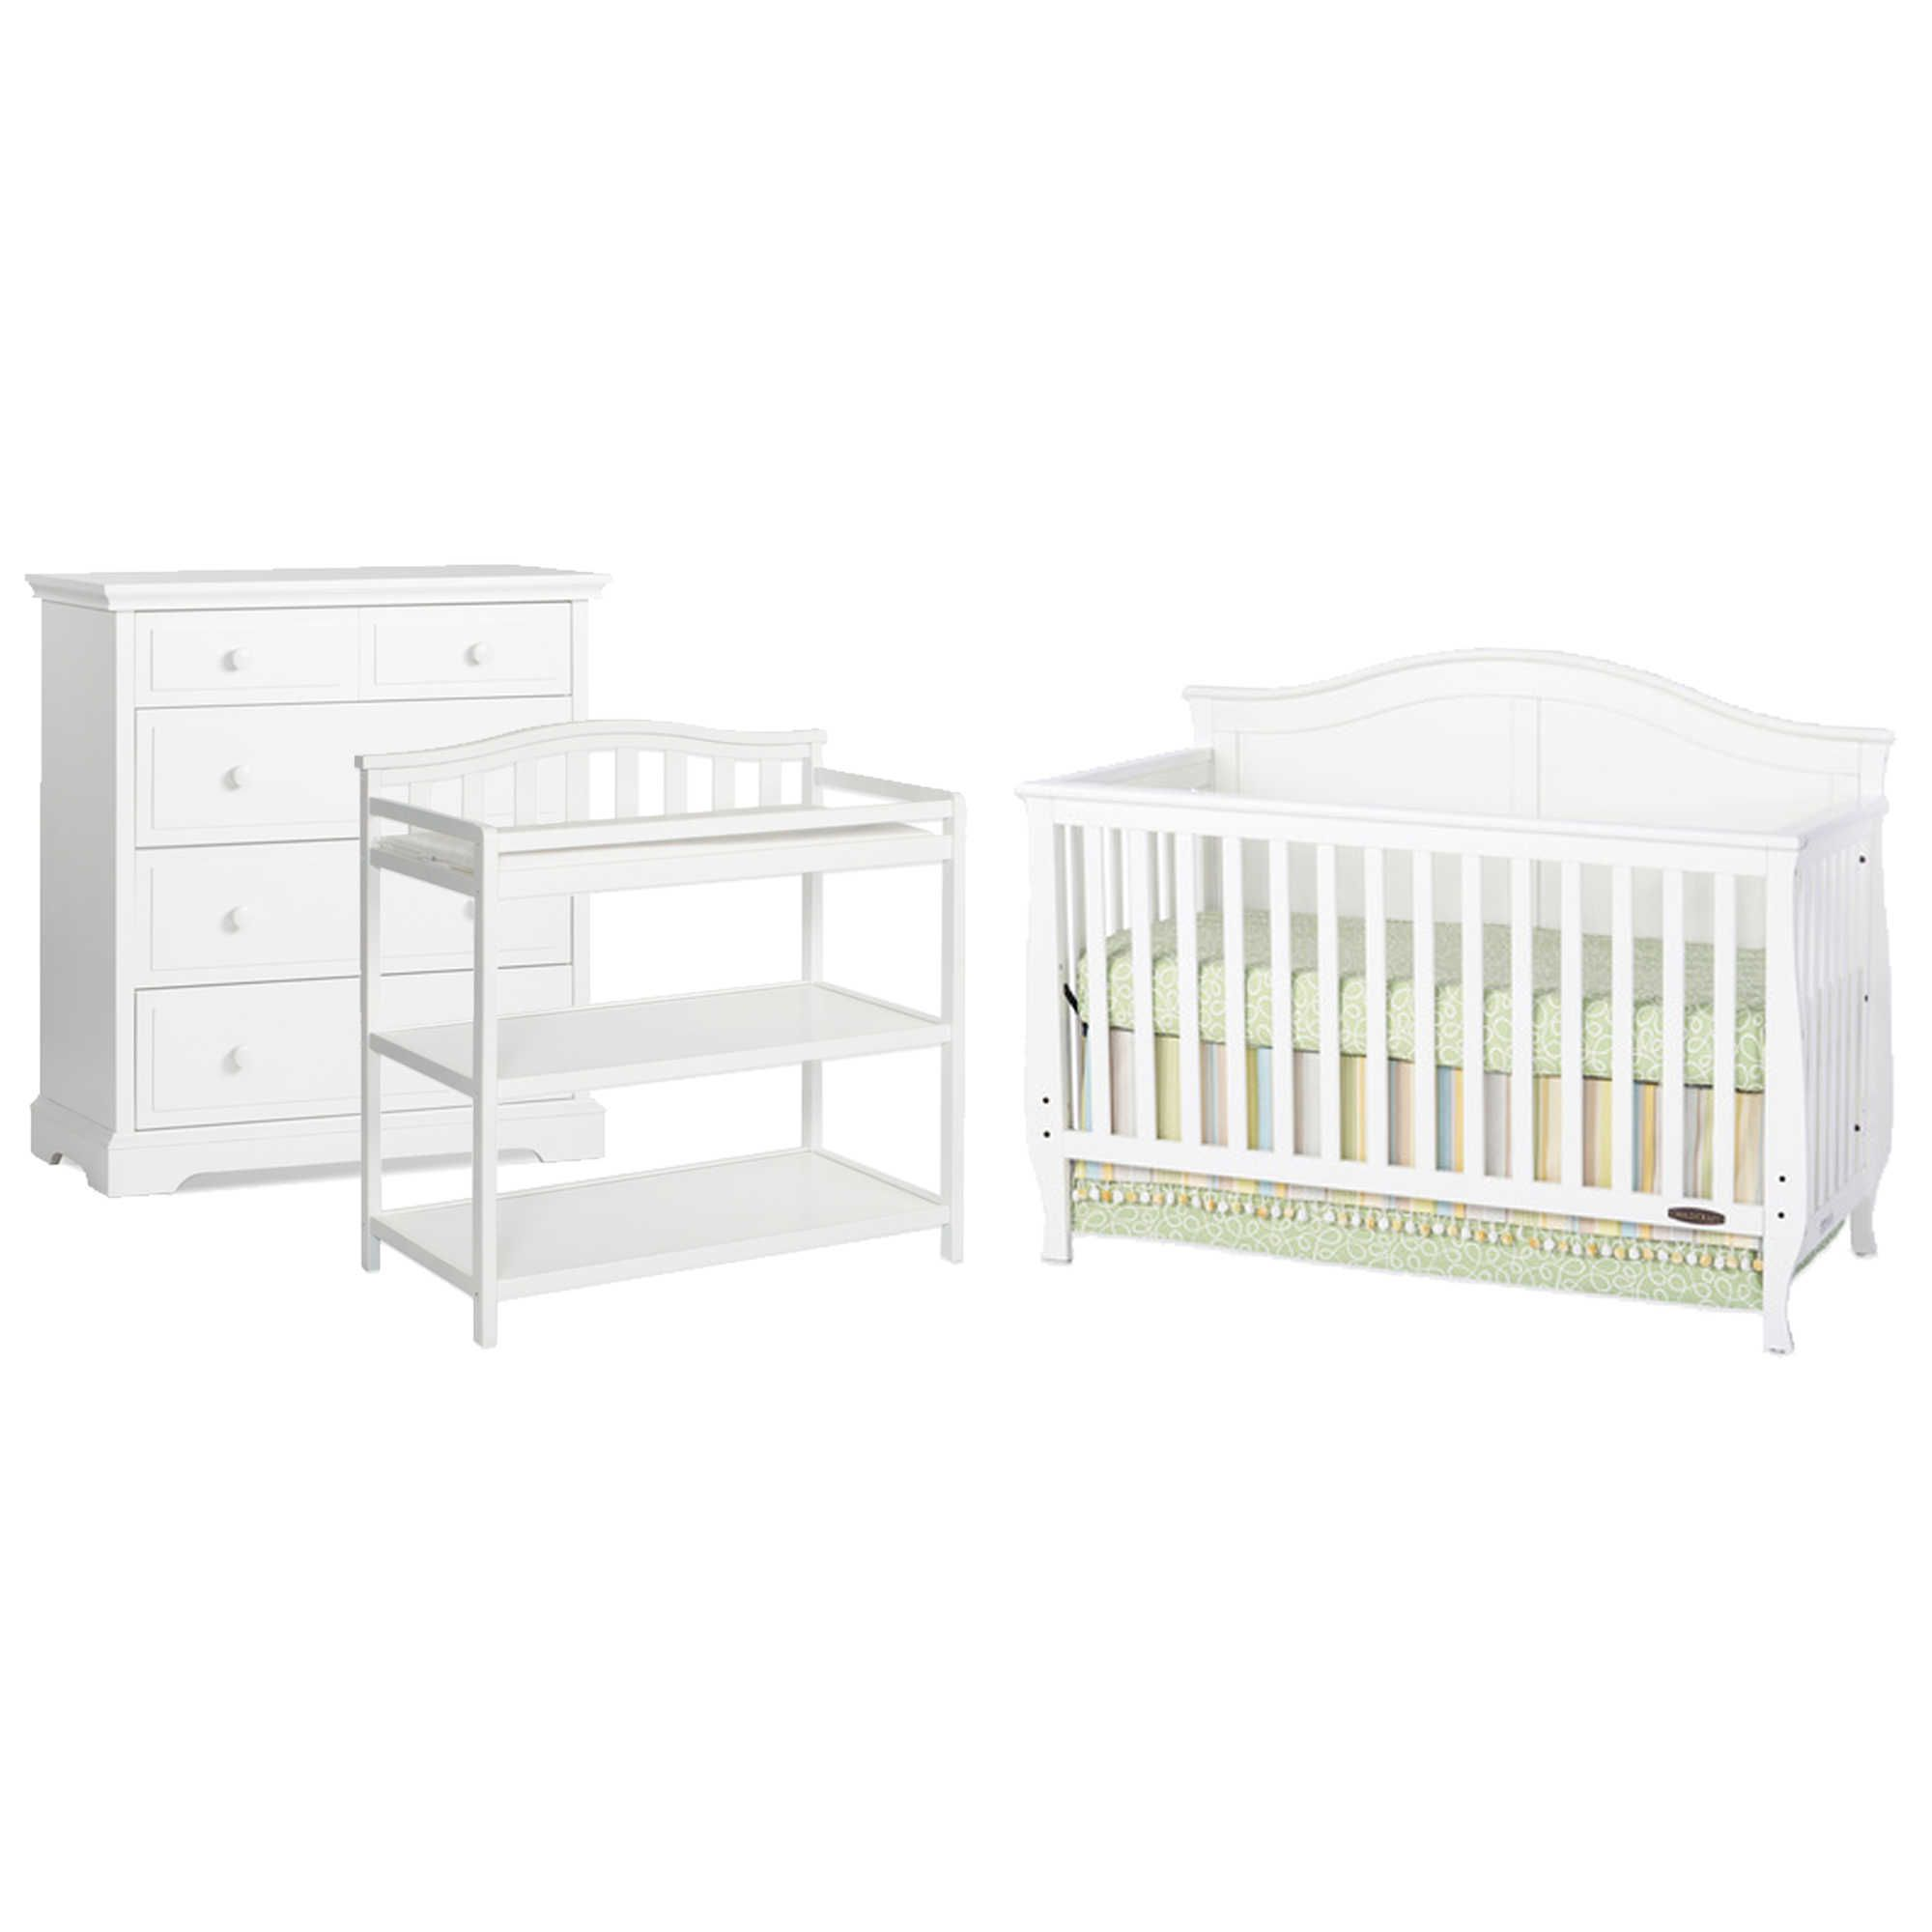 crib convertible camden walmart guardrail com ip for toddler cribs child cool gray craft